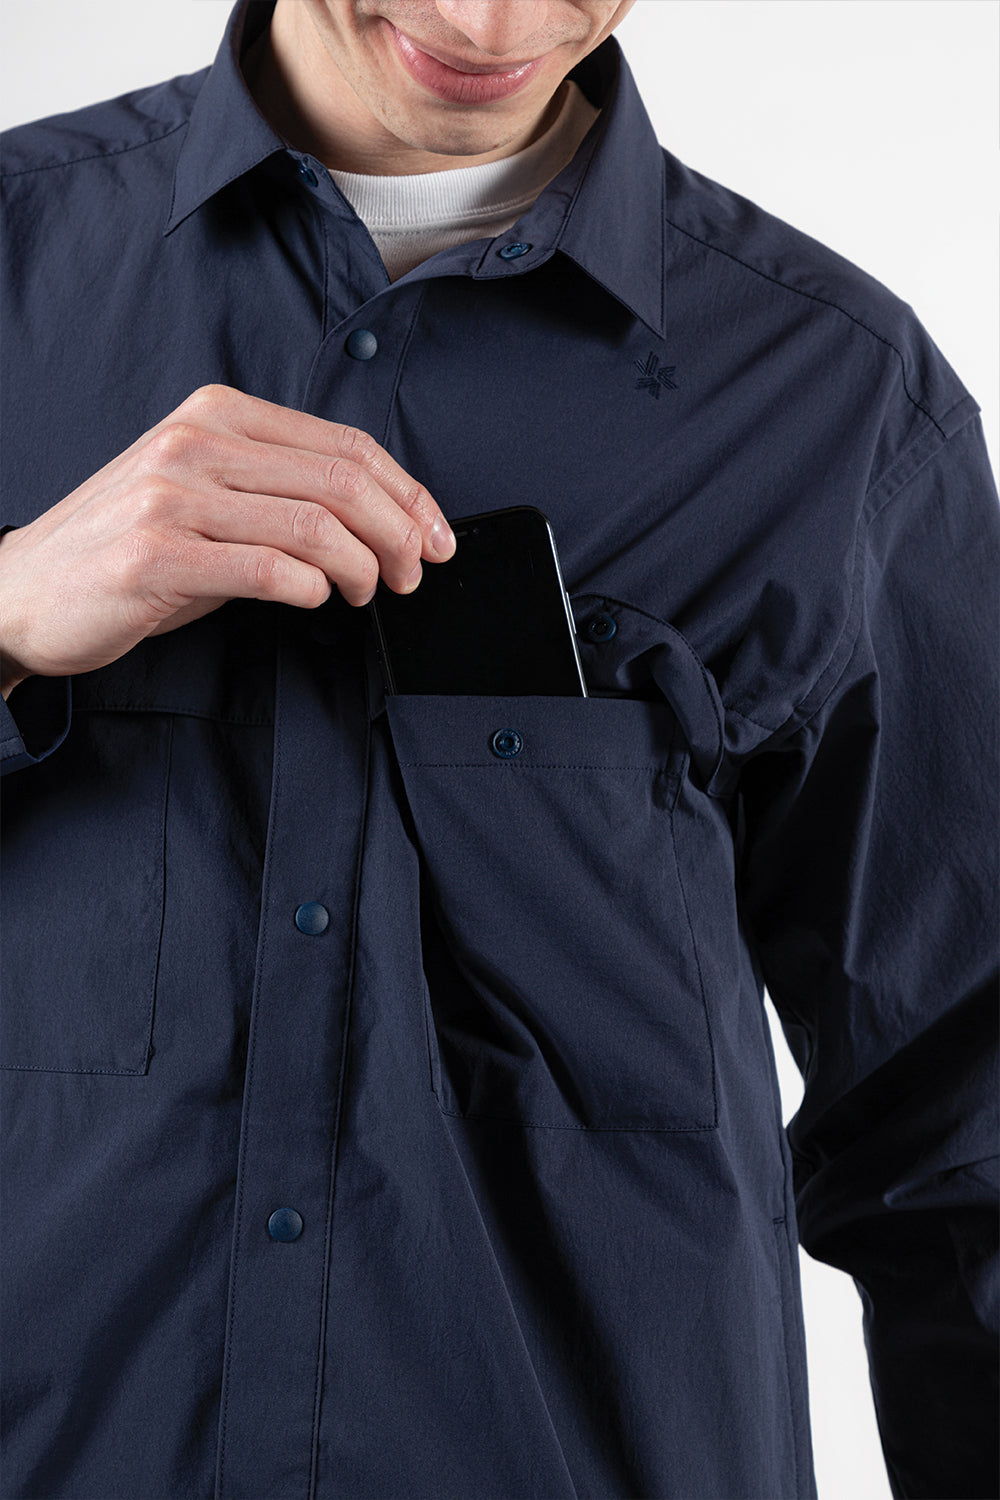 goldwin-square-box-coach-shirt-navy